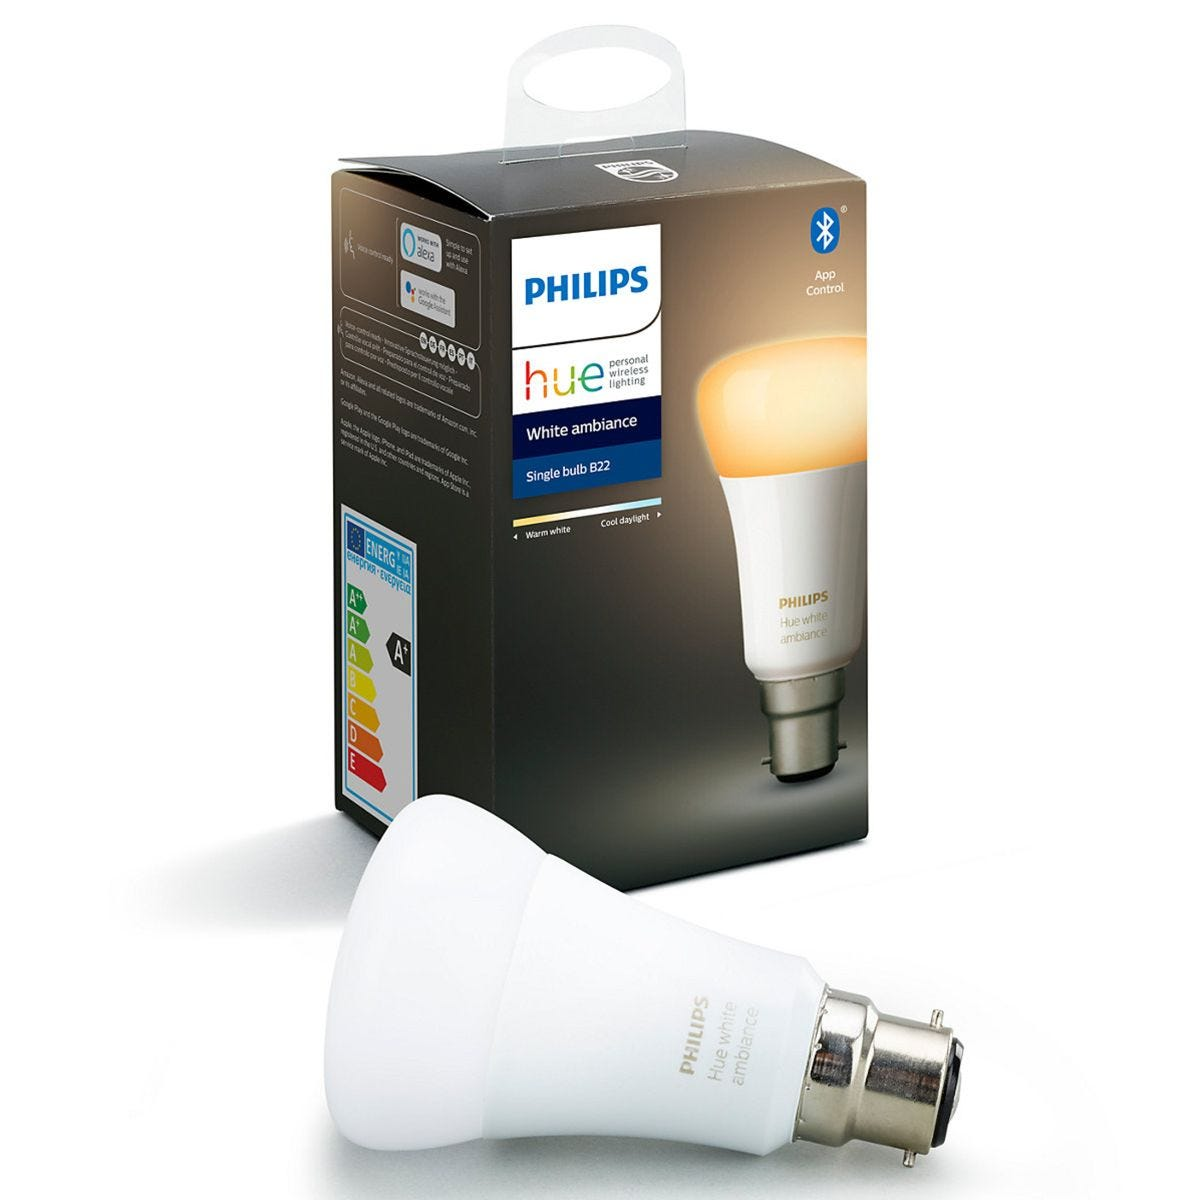 Philips Hue Smart Wi-Fi Dimmable White Ambience B22 60W Bluetooth Light Bulb